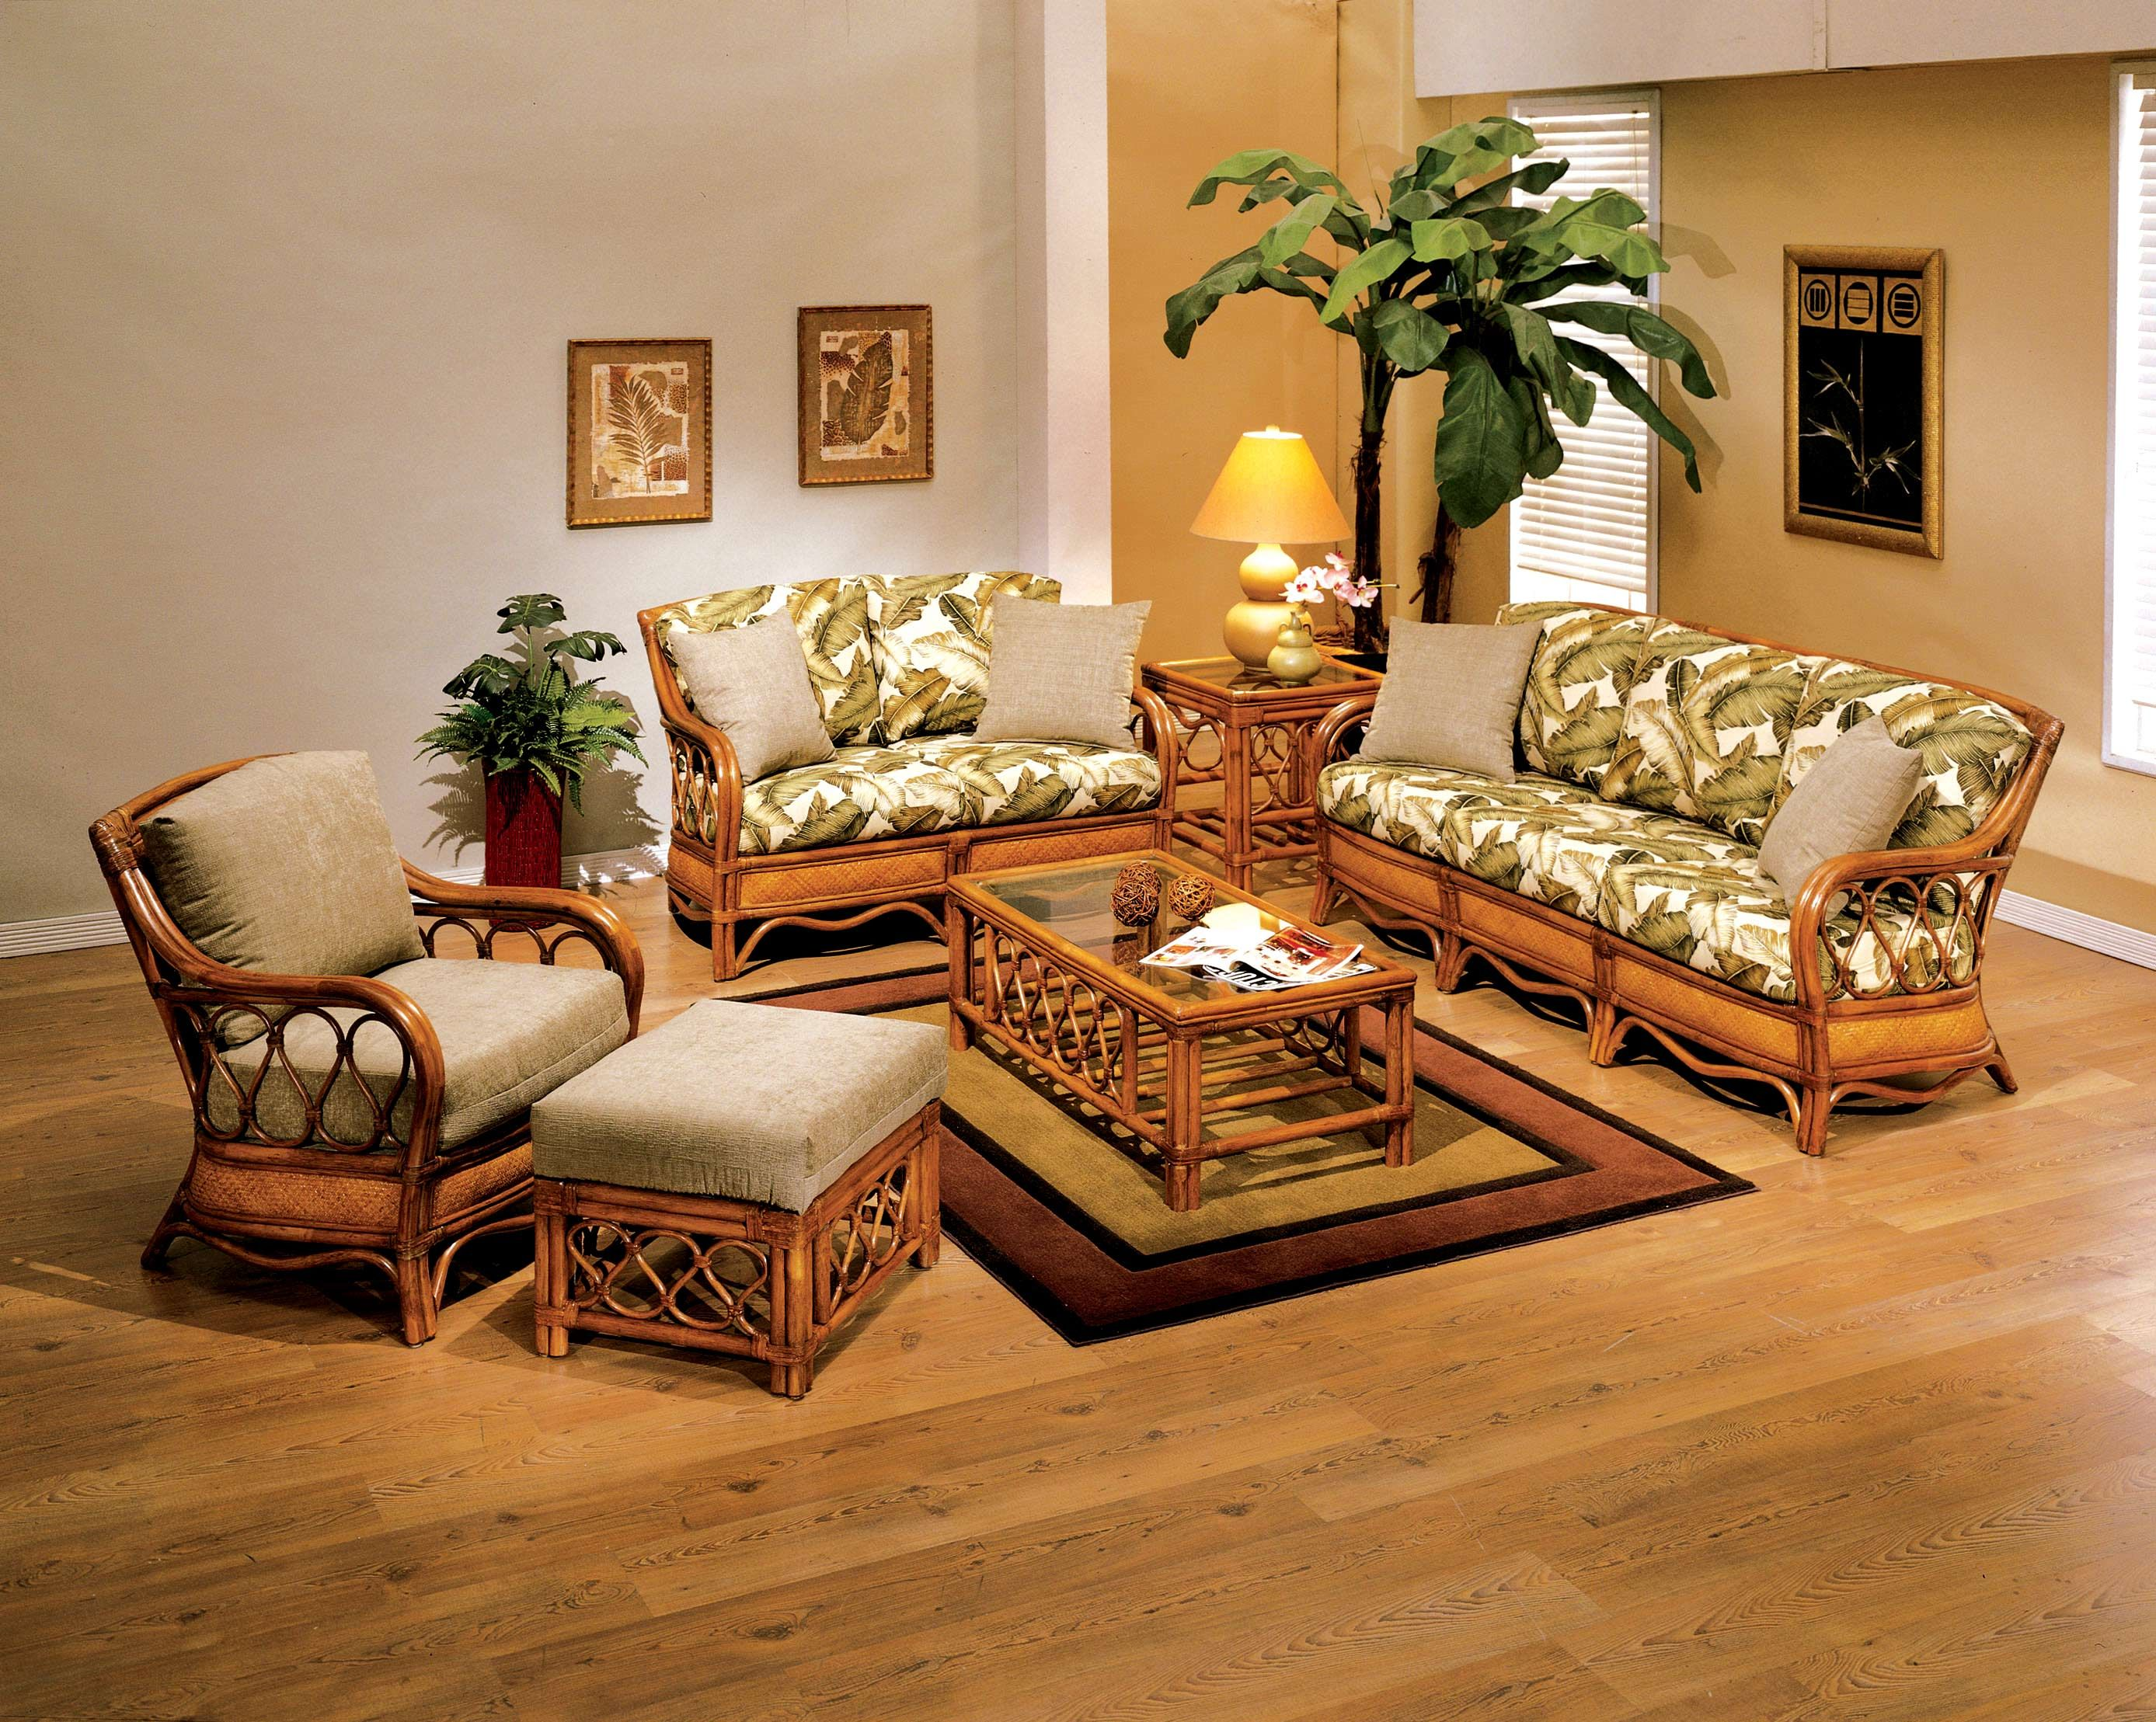 rattan, wicker, bamboo chairs | Rattan Living Room Furniture ...